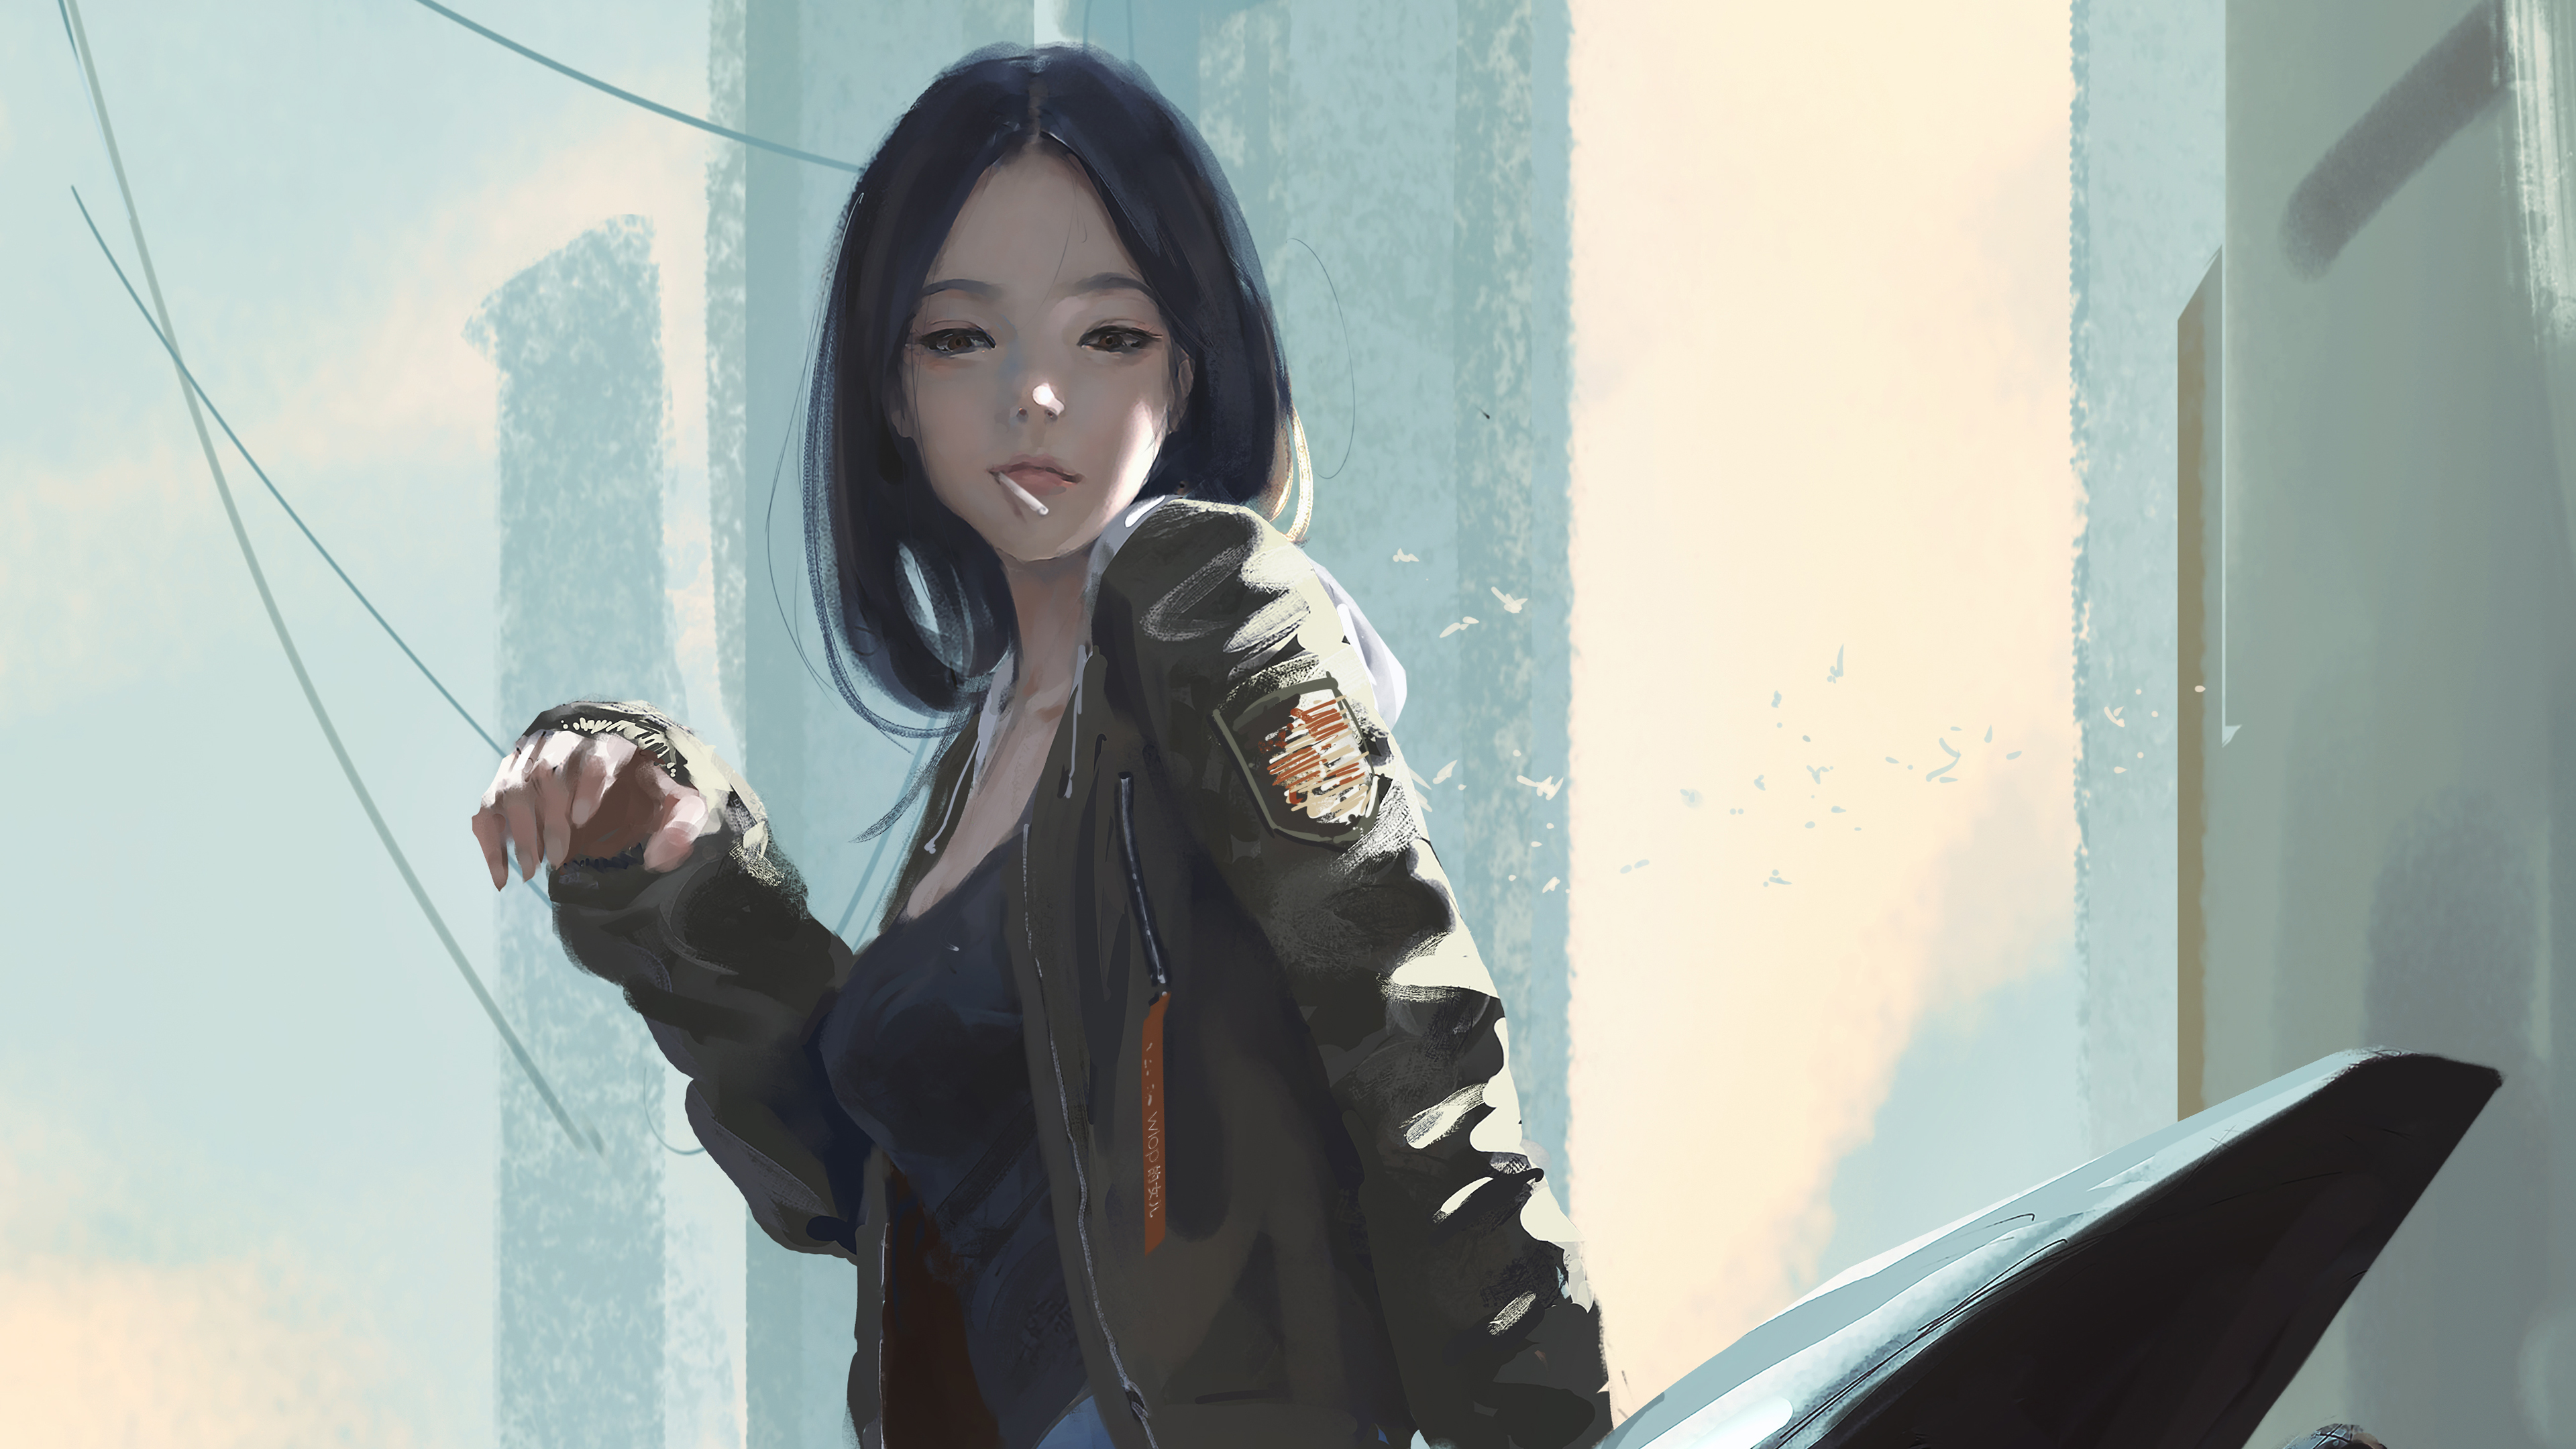 Urban Girl Smoking Cigarette, HD Anime, 8k Wallpapers, Images